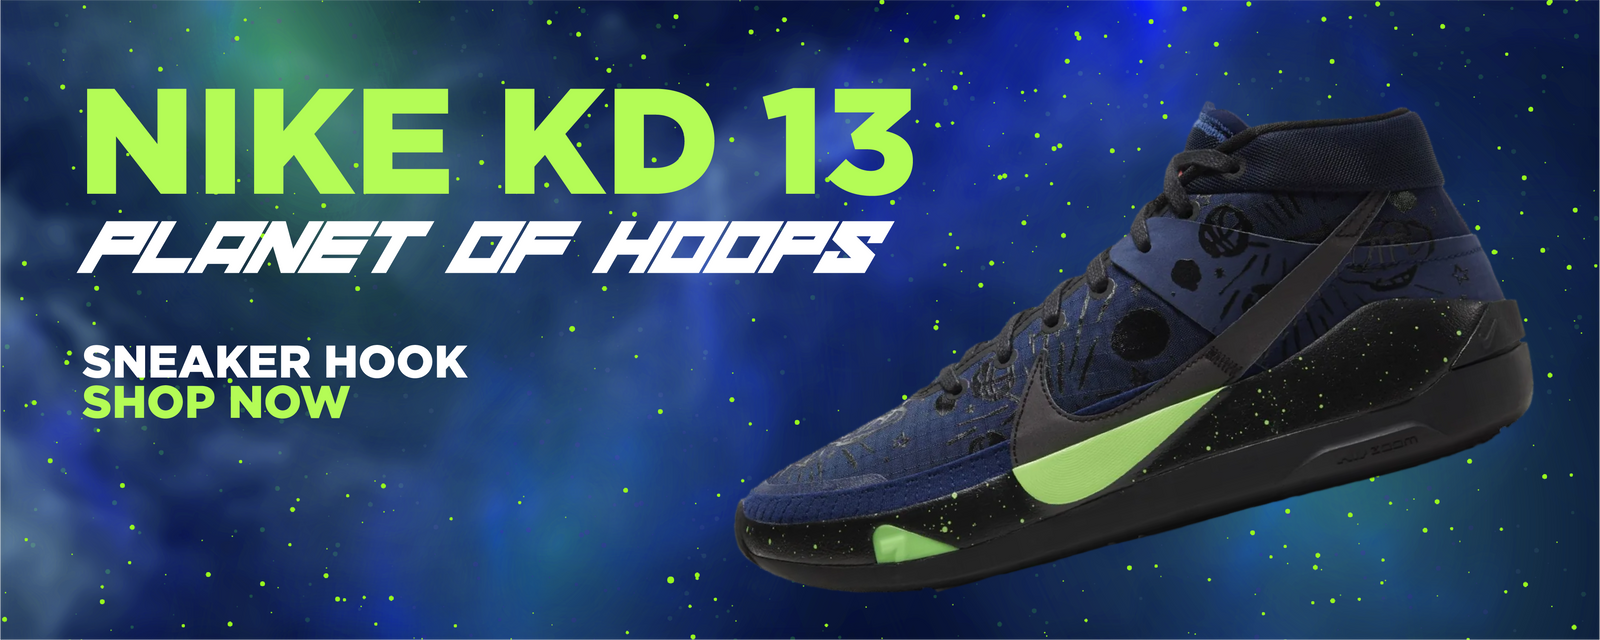 KD 13 Planet of Hoops Clothings to match Sneakers | Clothing to match Nike KD 13 Planet of Hoops Shoes